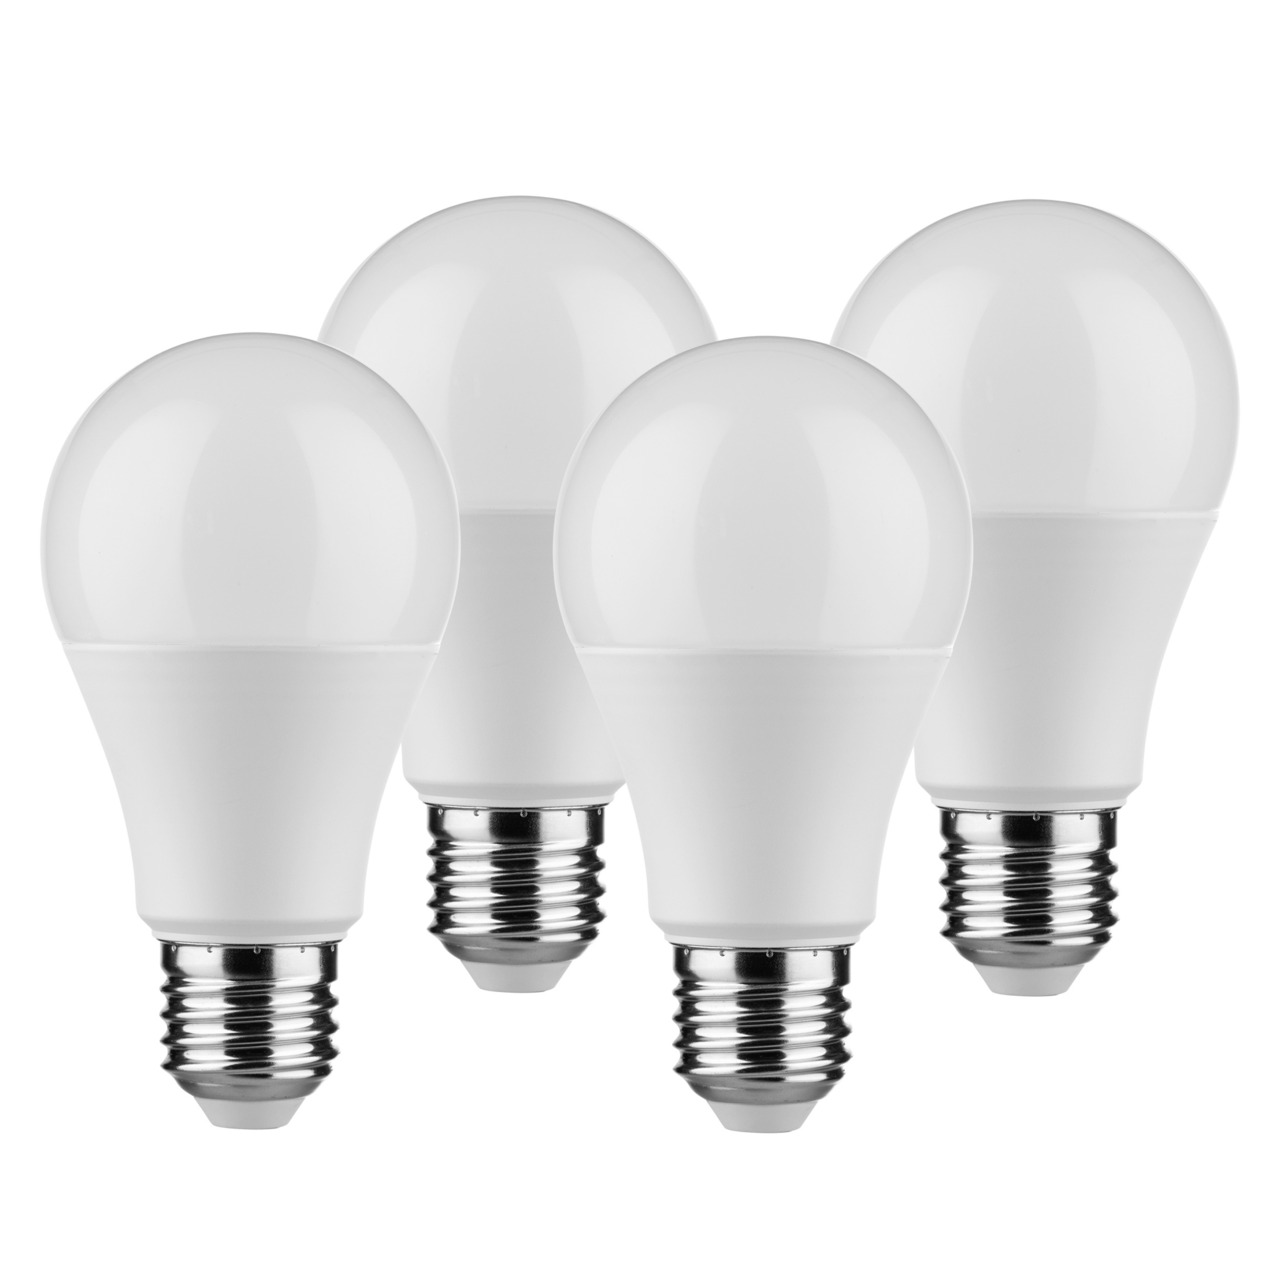 Müller Licht 4er Pack 9-W-LED-Lampen E27- warmweiss- 806 lm